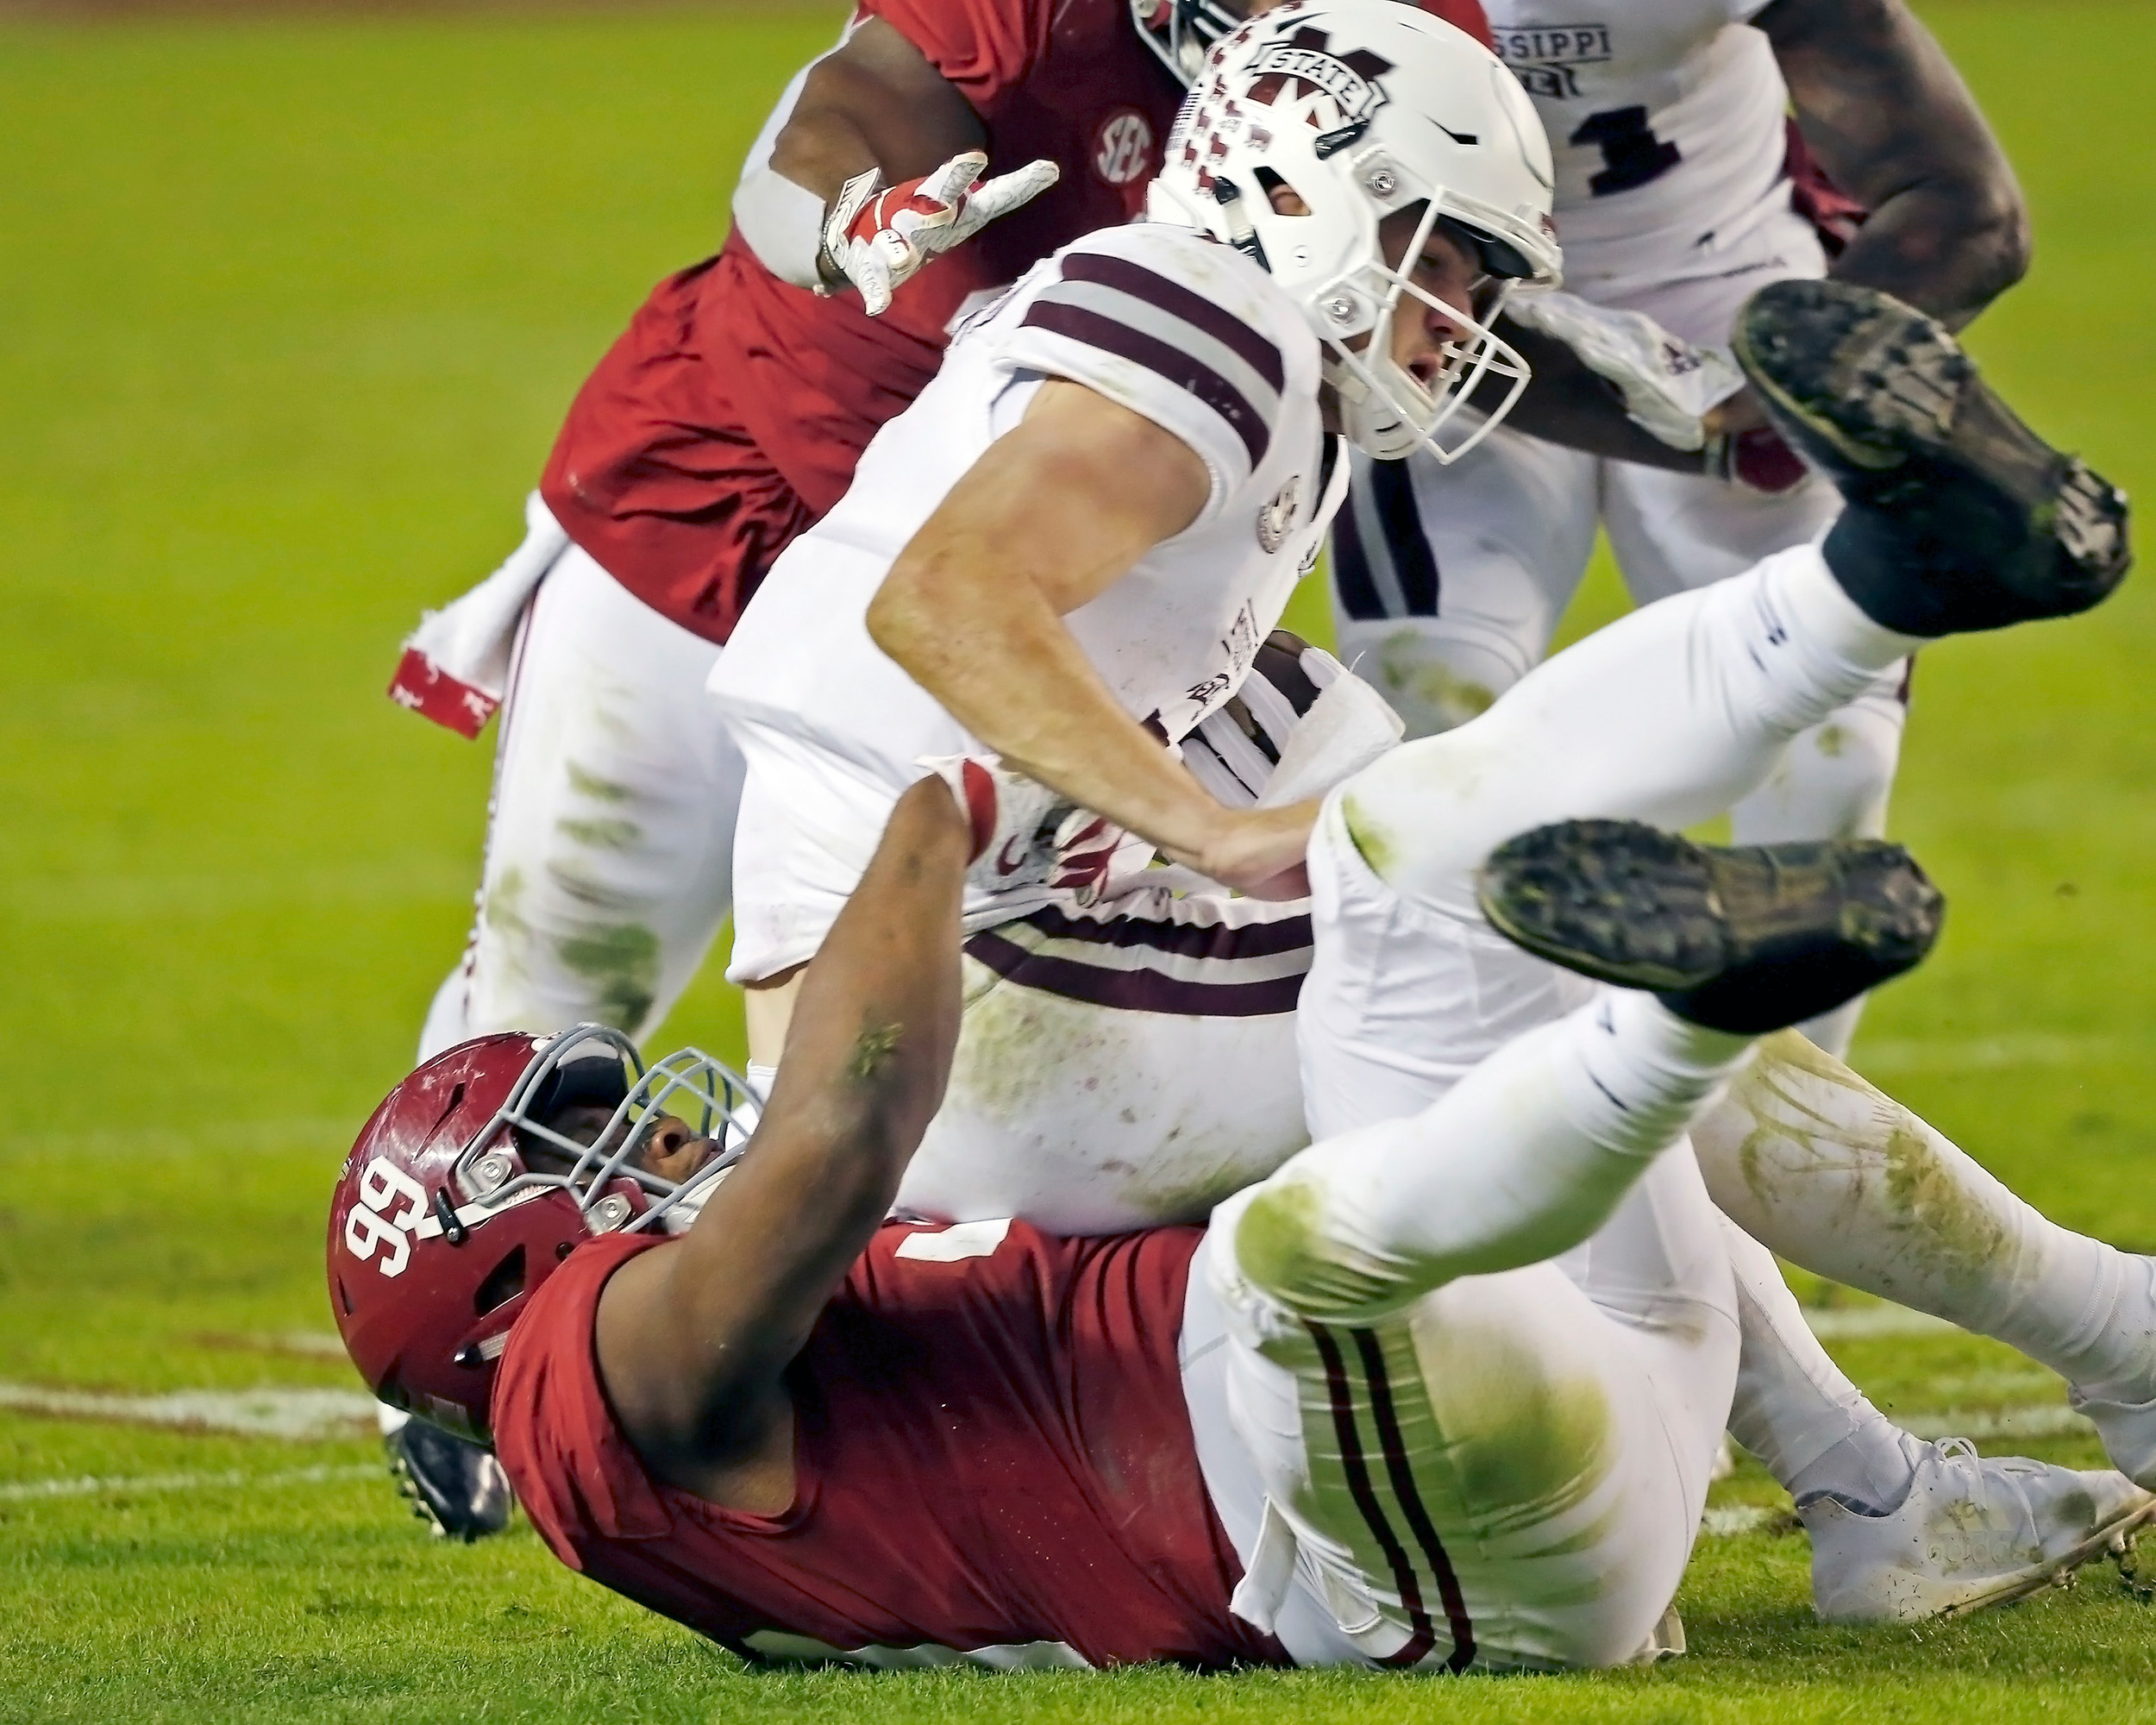 Alabama Crimson Tide defensive lineman Raekwon Davis (99) saks Mississippi State Bulldogs quarterback Nick Fitzgerald (7) again during the second half of the game between Mississippi State and the University of Alabama at Bryant-Denny Stadium in Tuscaloosa, Al. Credit: Jason Clark / Daily Mountain Eagle